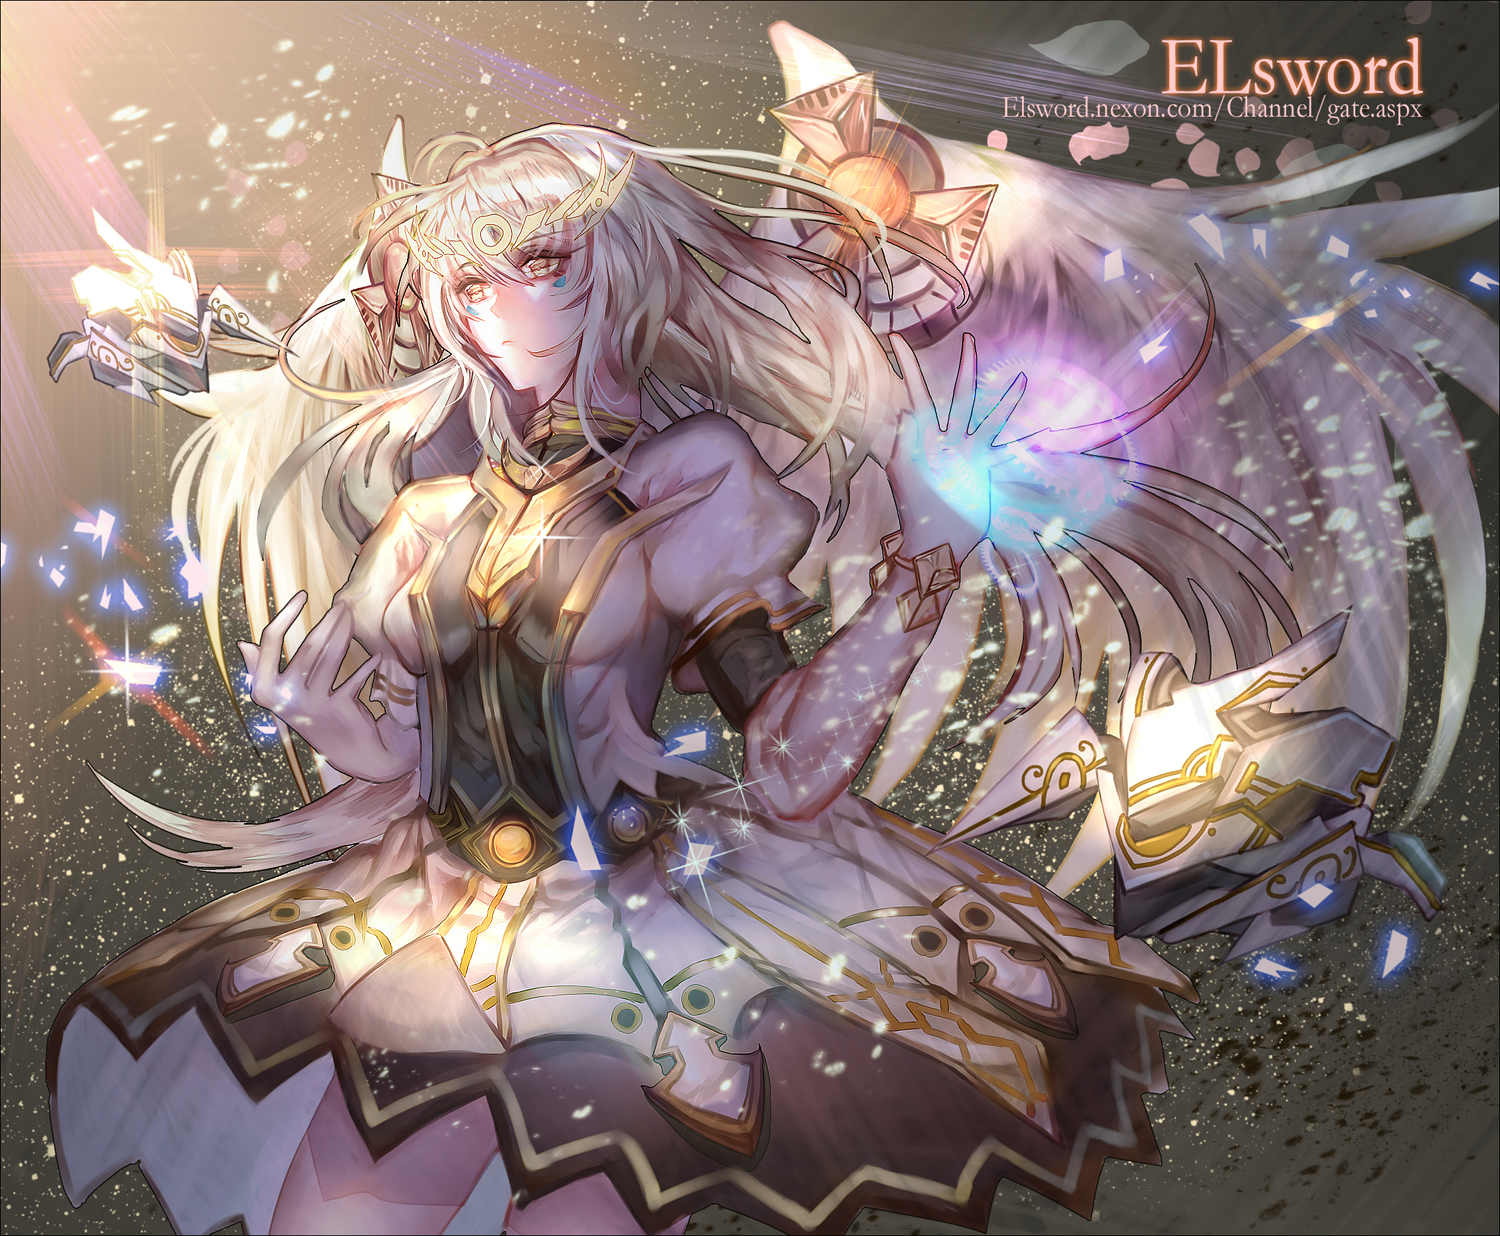 Download 1280x1024 Elsword, Lena, Aisha, Raven, Eve, Anime Style ...